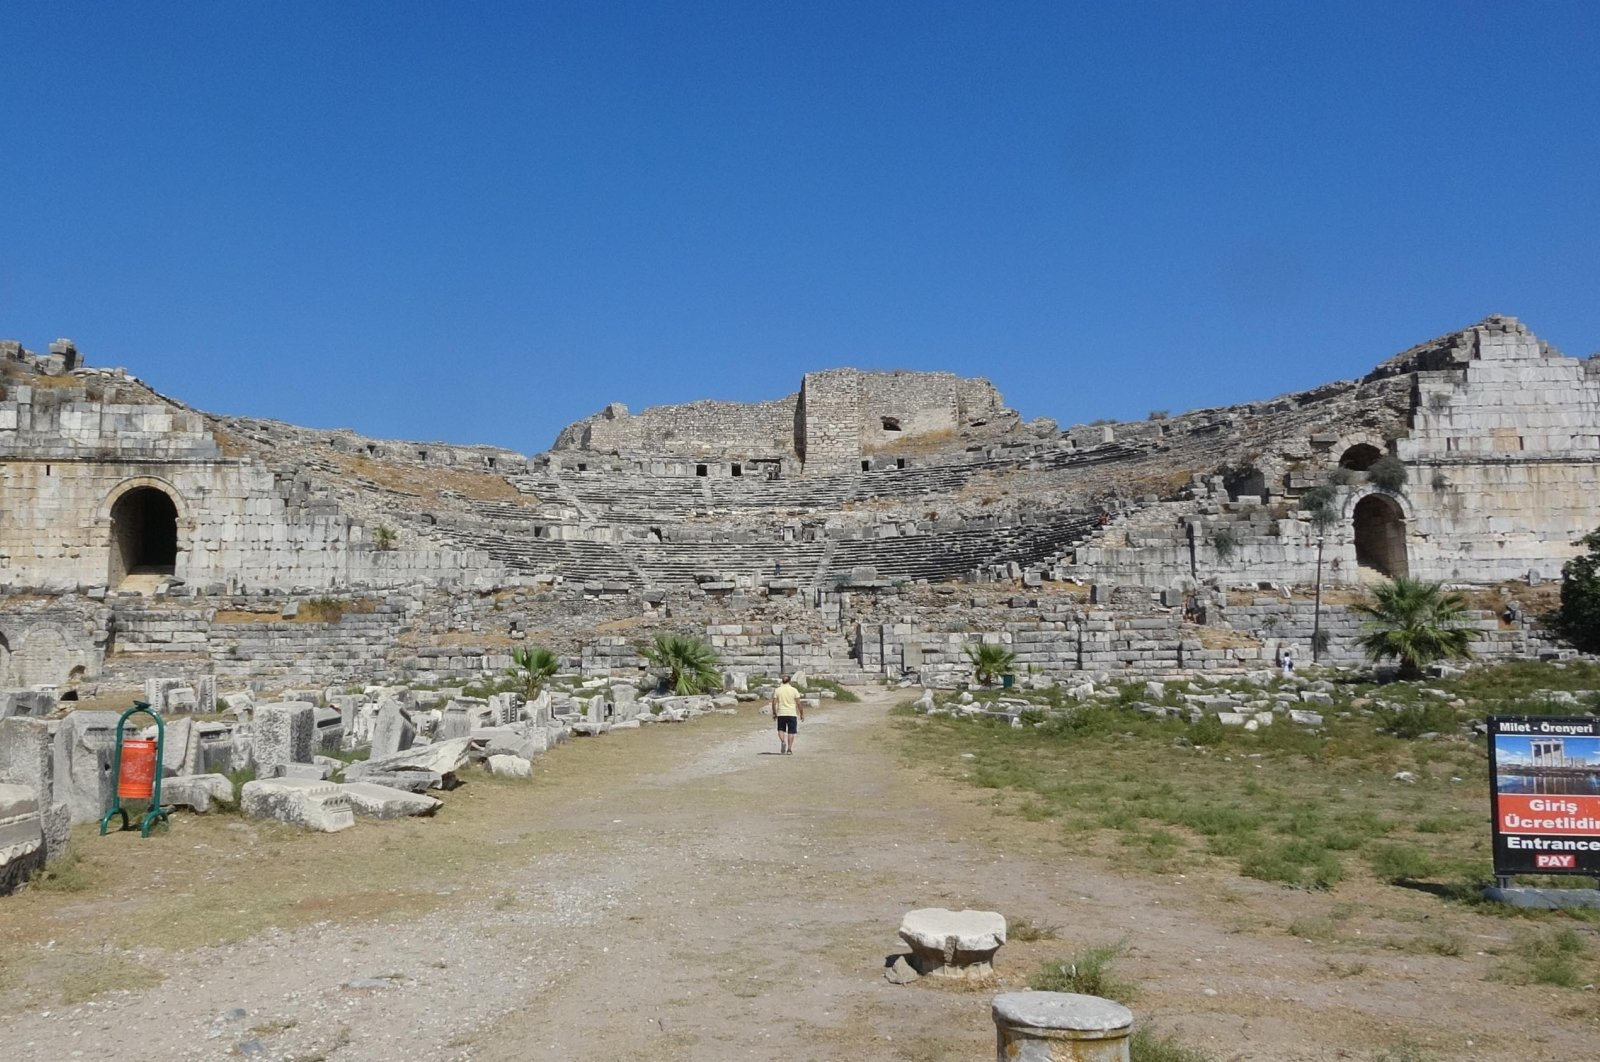 2,400-year-old houses were unearthed in an ancient city in southwestern Turkey. (DHA Photo)